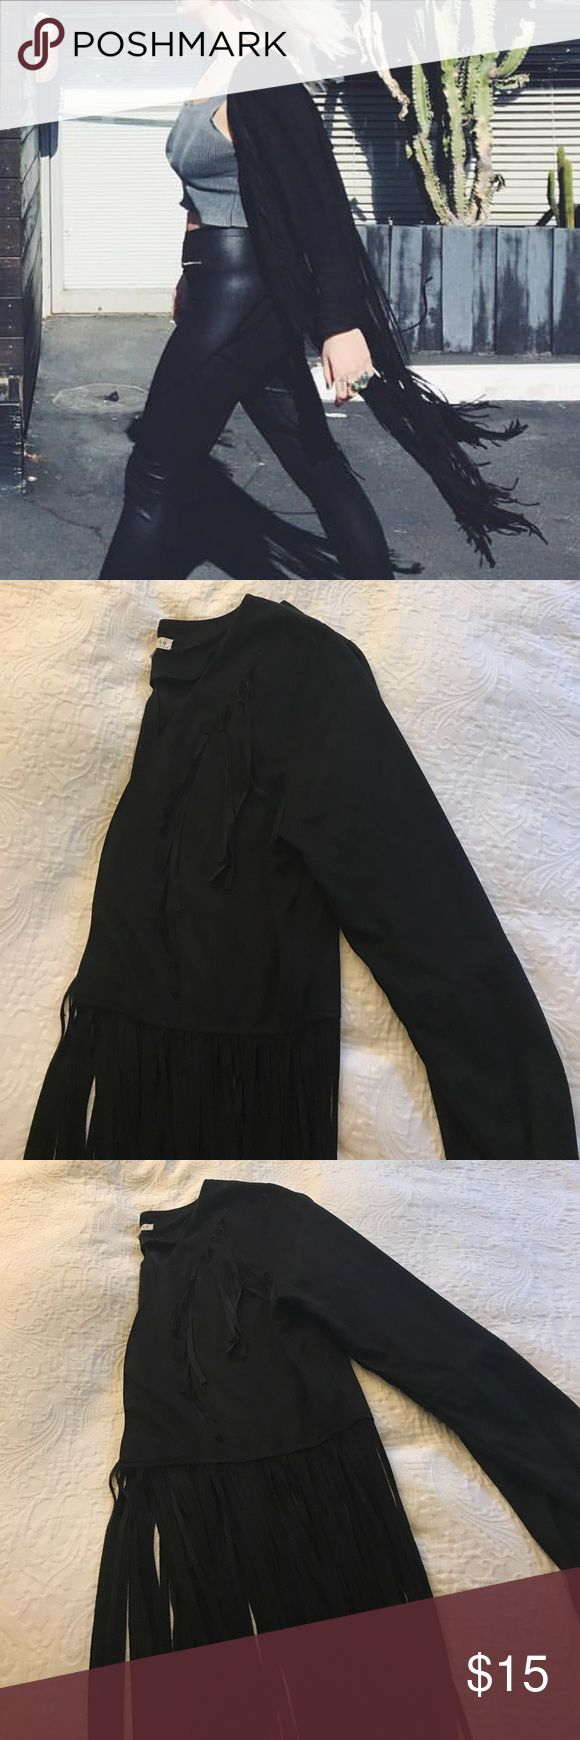 Black Long Fringe Suede Jacket Only worn once, soft suede lightweight jacket! Perfect for accessorizing an afternoon or evening outfit! Fits a size Small, Medium & Large! Xoxo Loveriche Jackets & Coats Capes